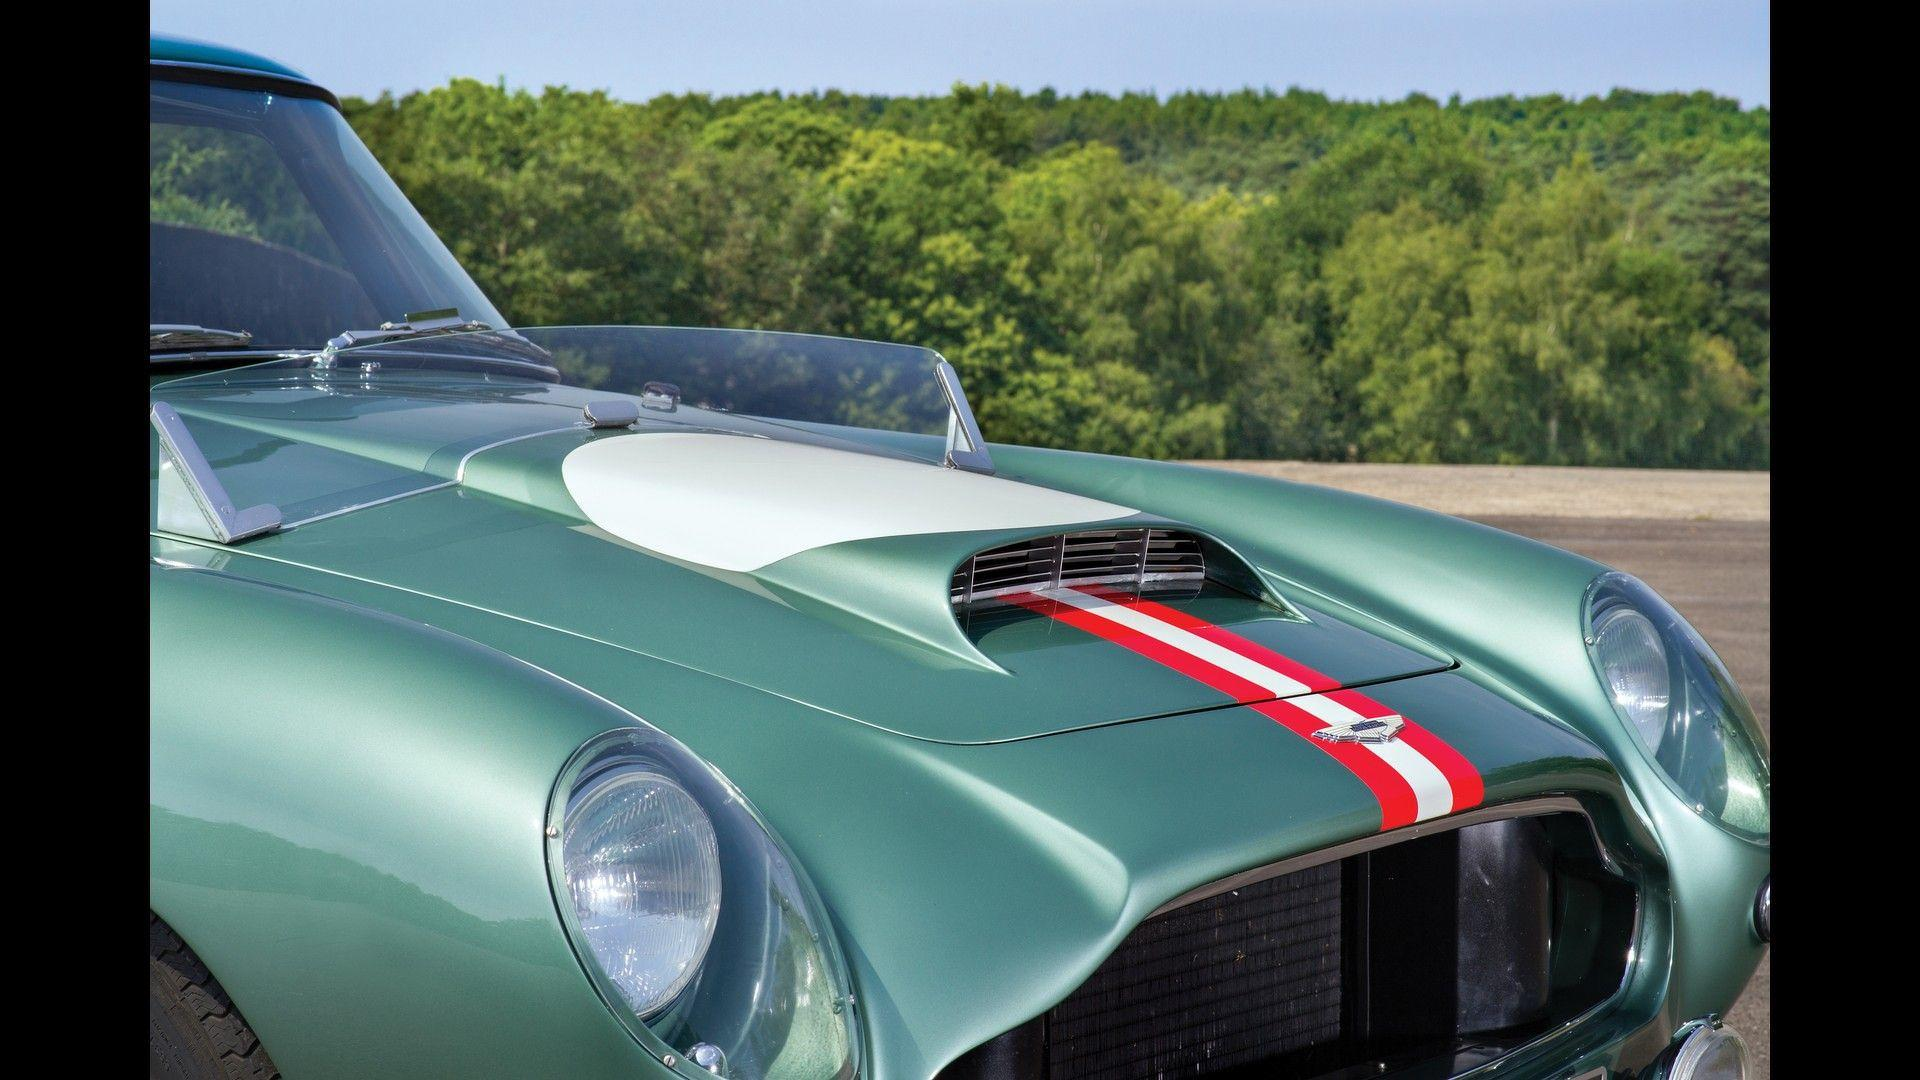 1959-aston-martin-db4gt-copyright-tim-scott-rm-sothebys (8)